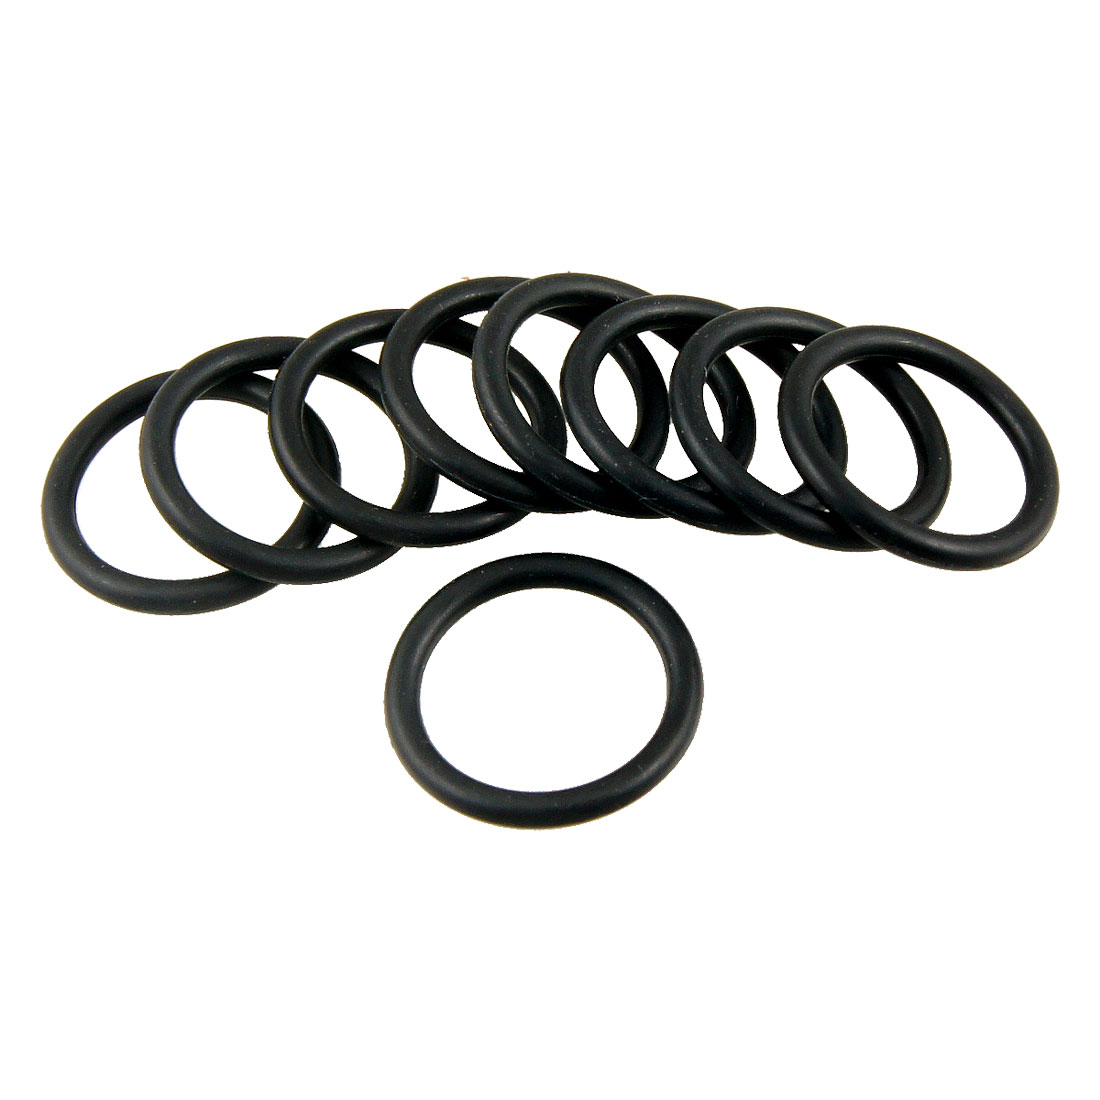 10 Pcs Black 35mm OD 4mm Thickness Nitrile Rubber O-ring Oil Seal Gaskets